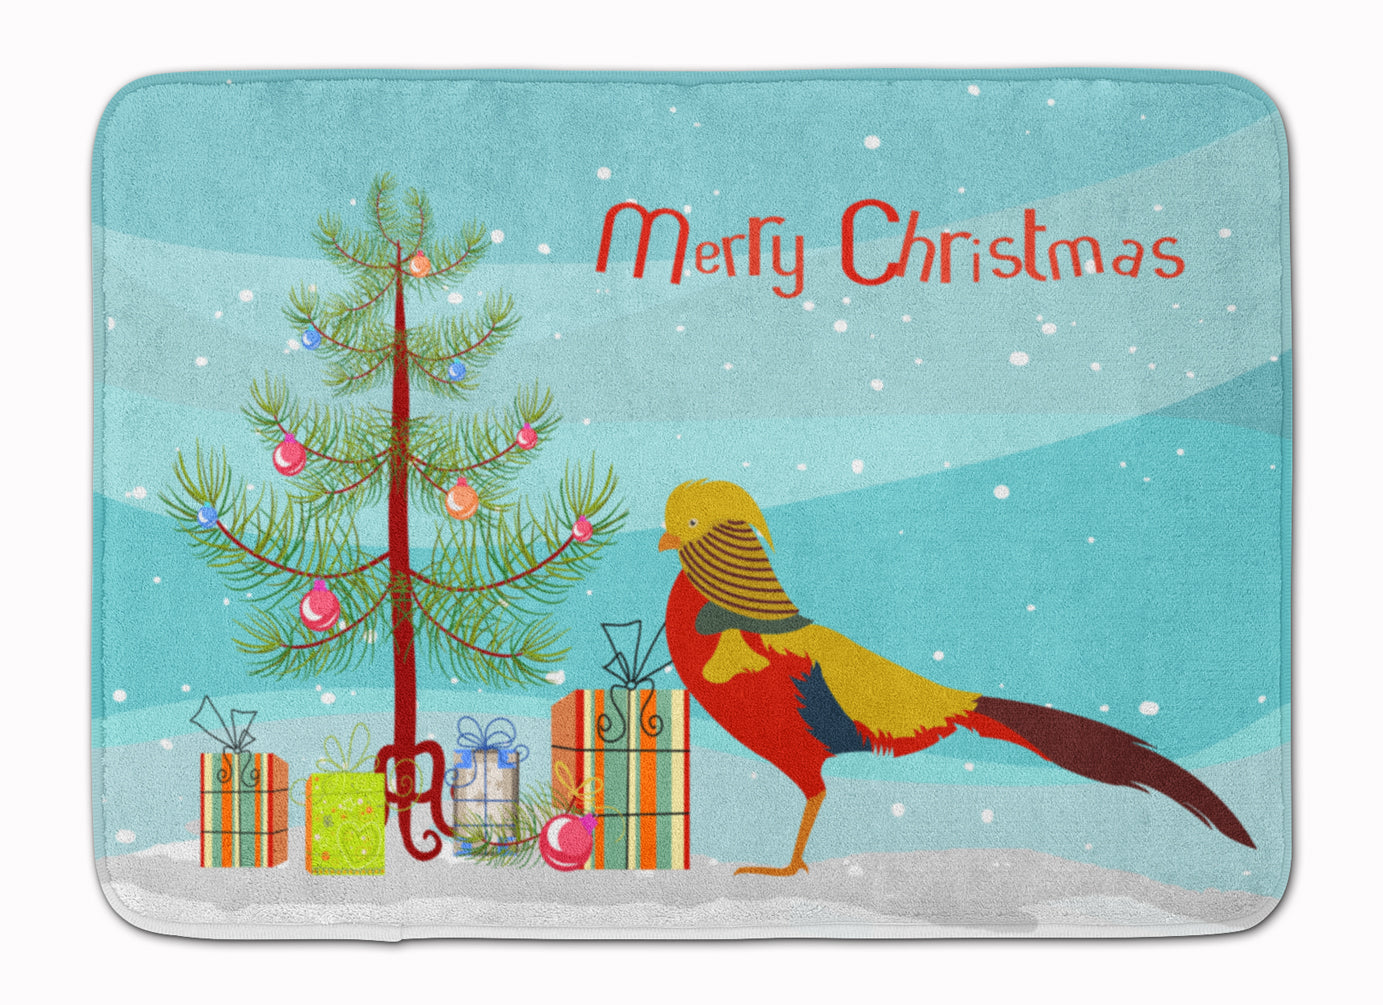 Golden or Chinese Pheasant Christmas Machine Washable Memory Foam Mat BB9295RUG by Caroline's Treasures